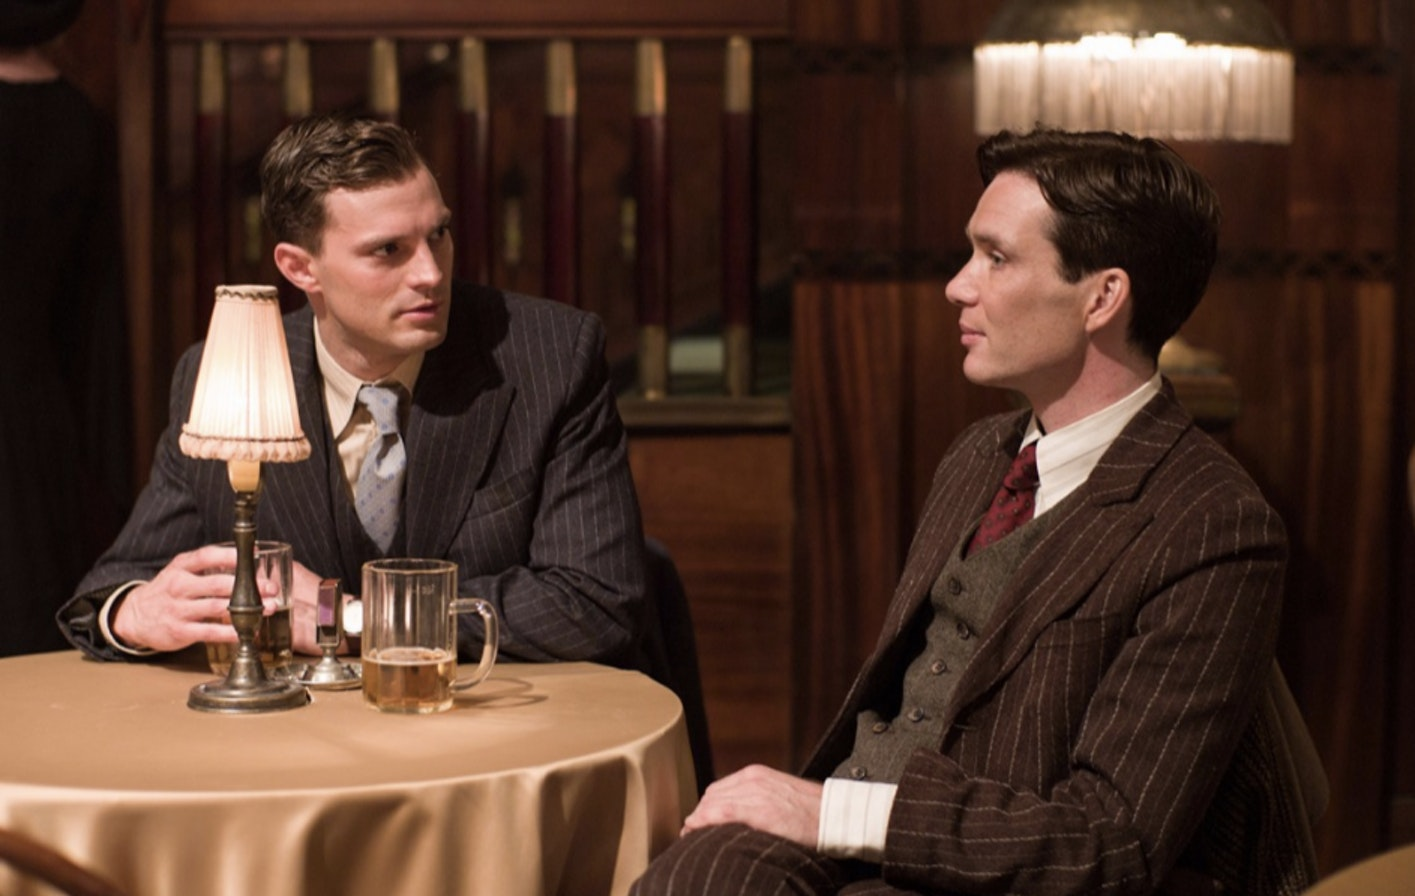 Dornan and Cillian Murphy as Jozef Gabčík in 'Anthropoid'.